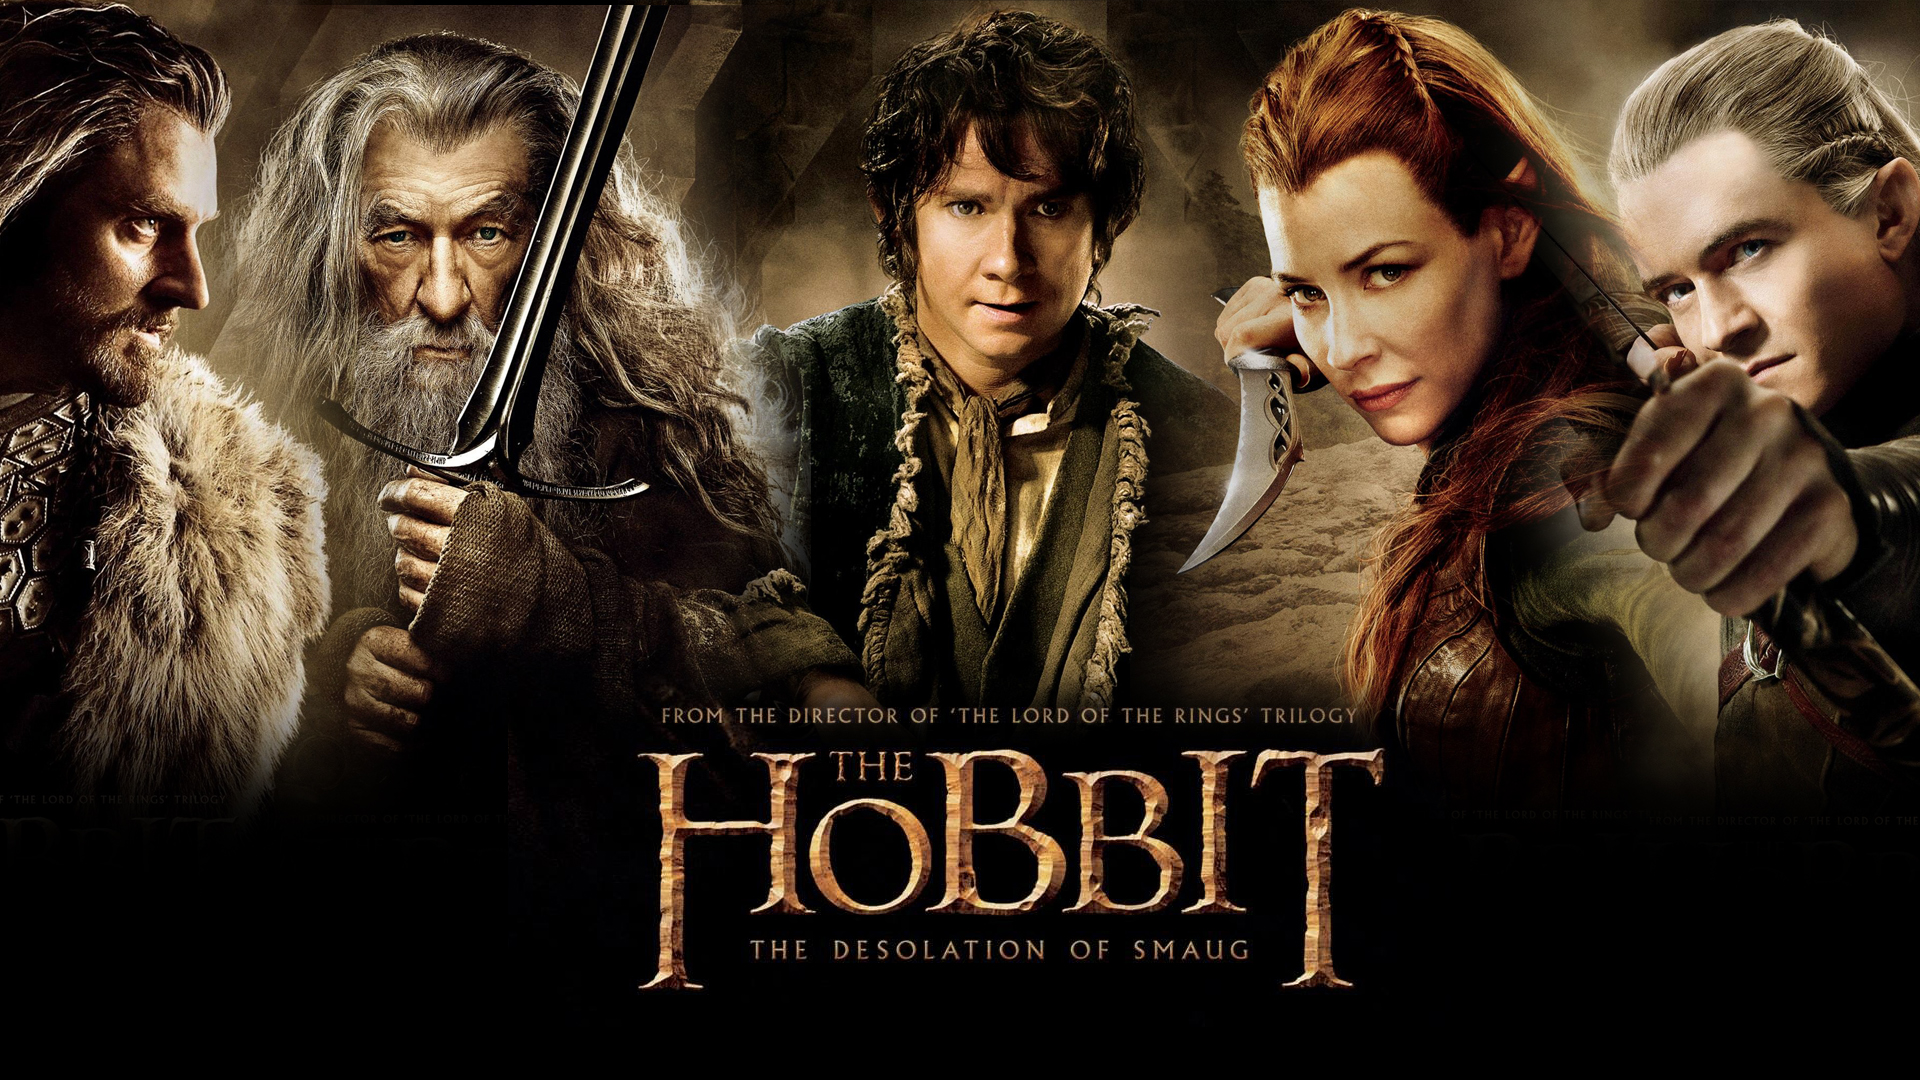 The hobbit: the desolation of smaug 2013 movie download in hindi.